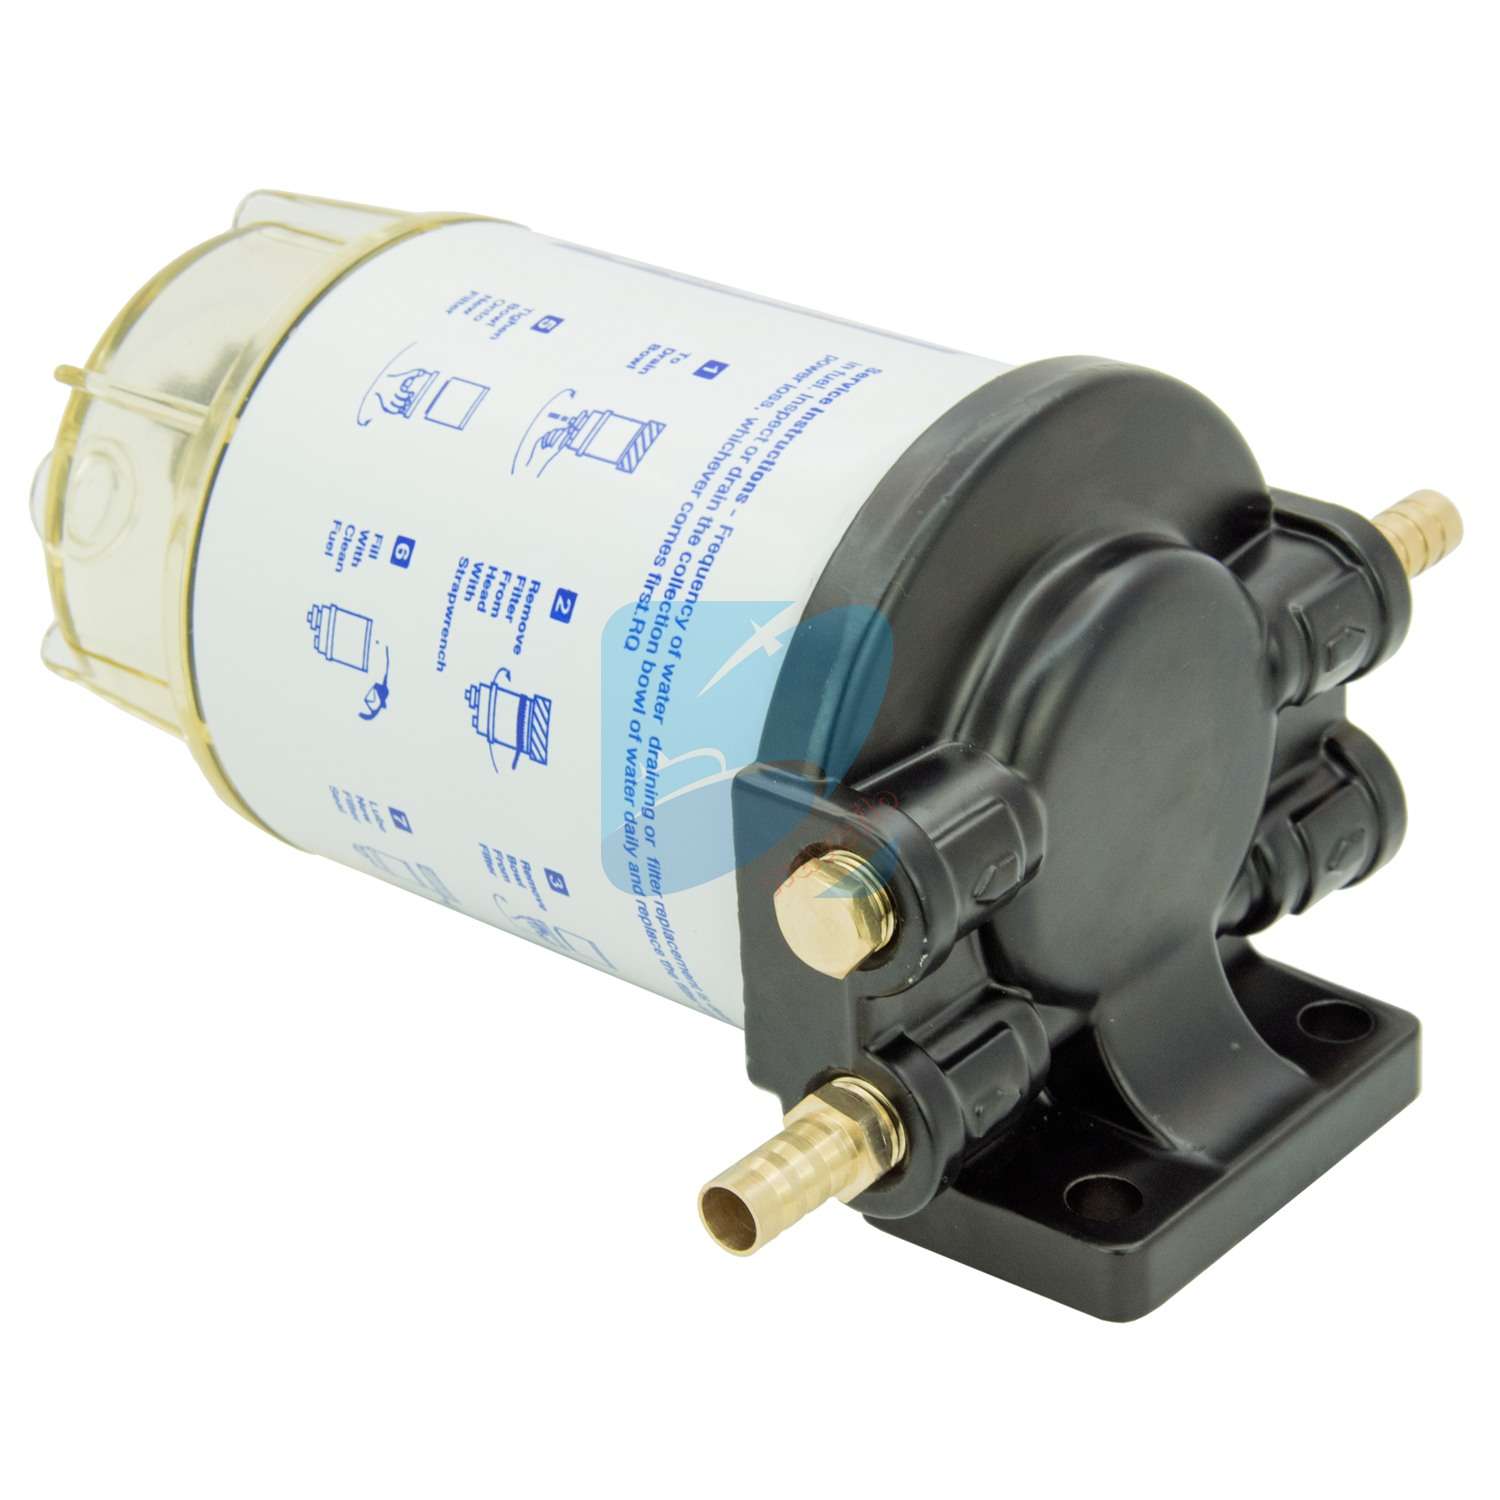 Boat Fuel Filter Marine Water Separator Mercury Yamaha Outboard Filters 10 Micron